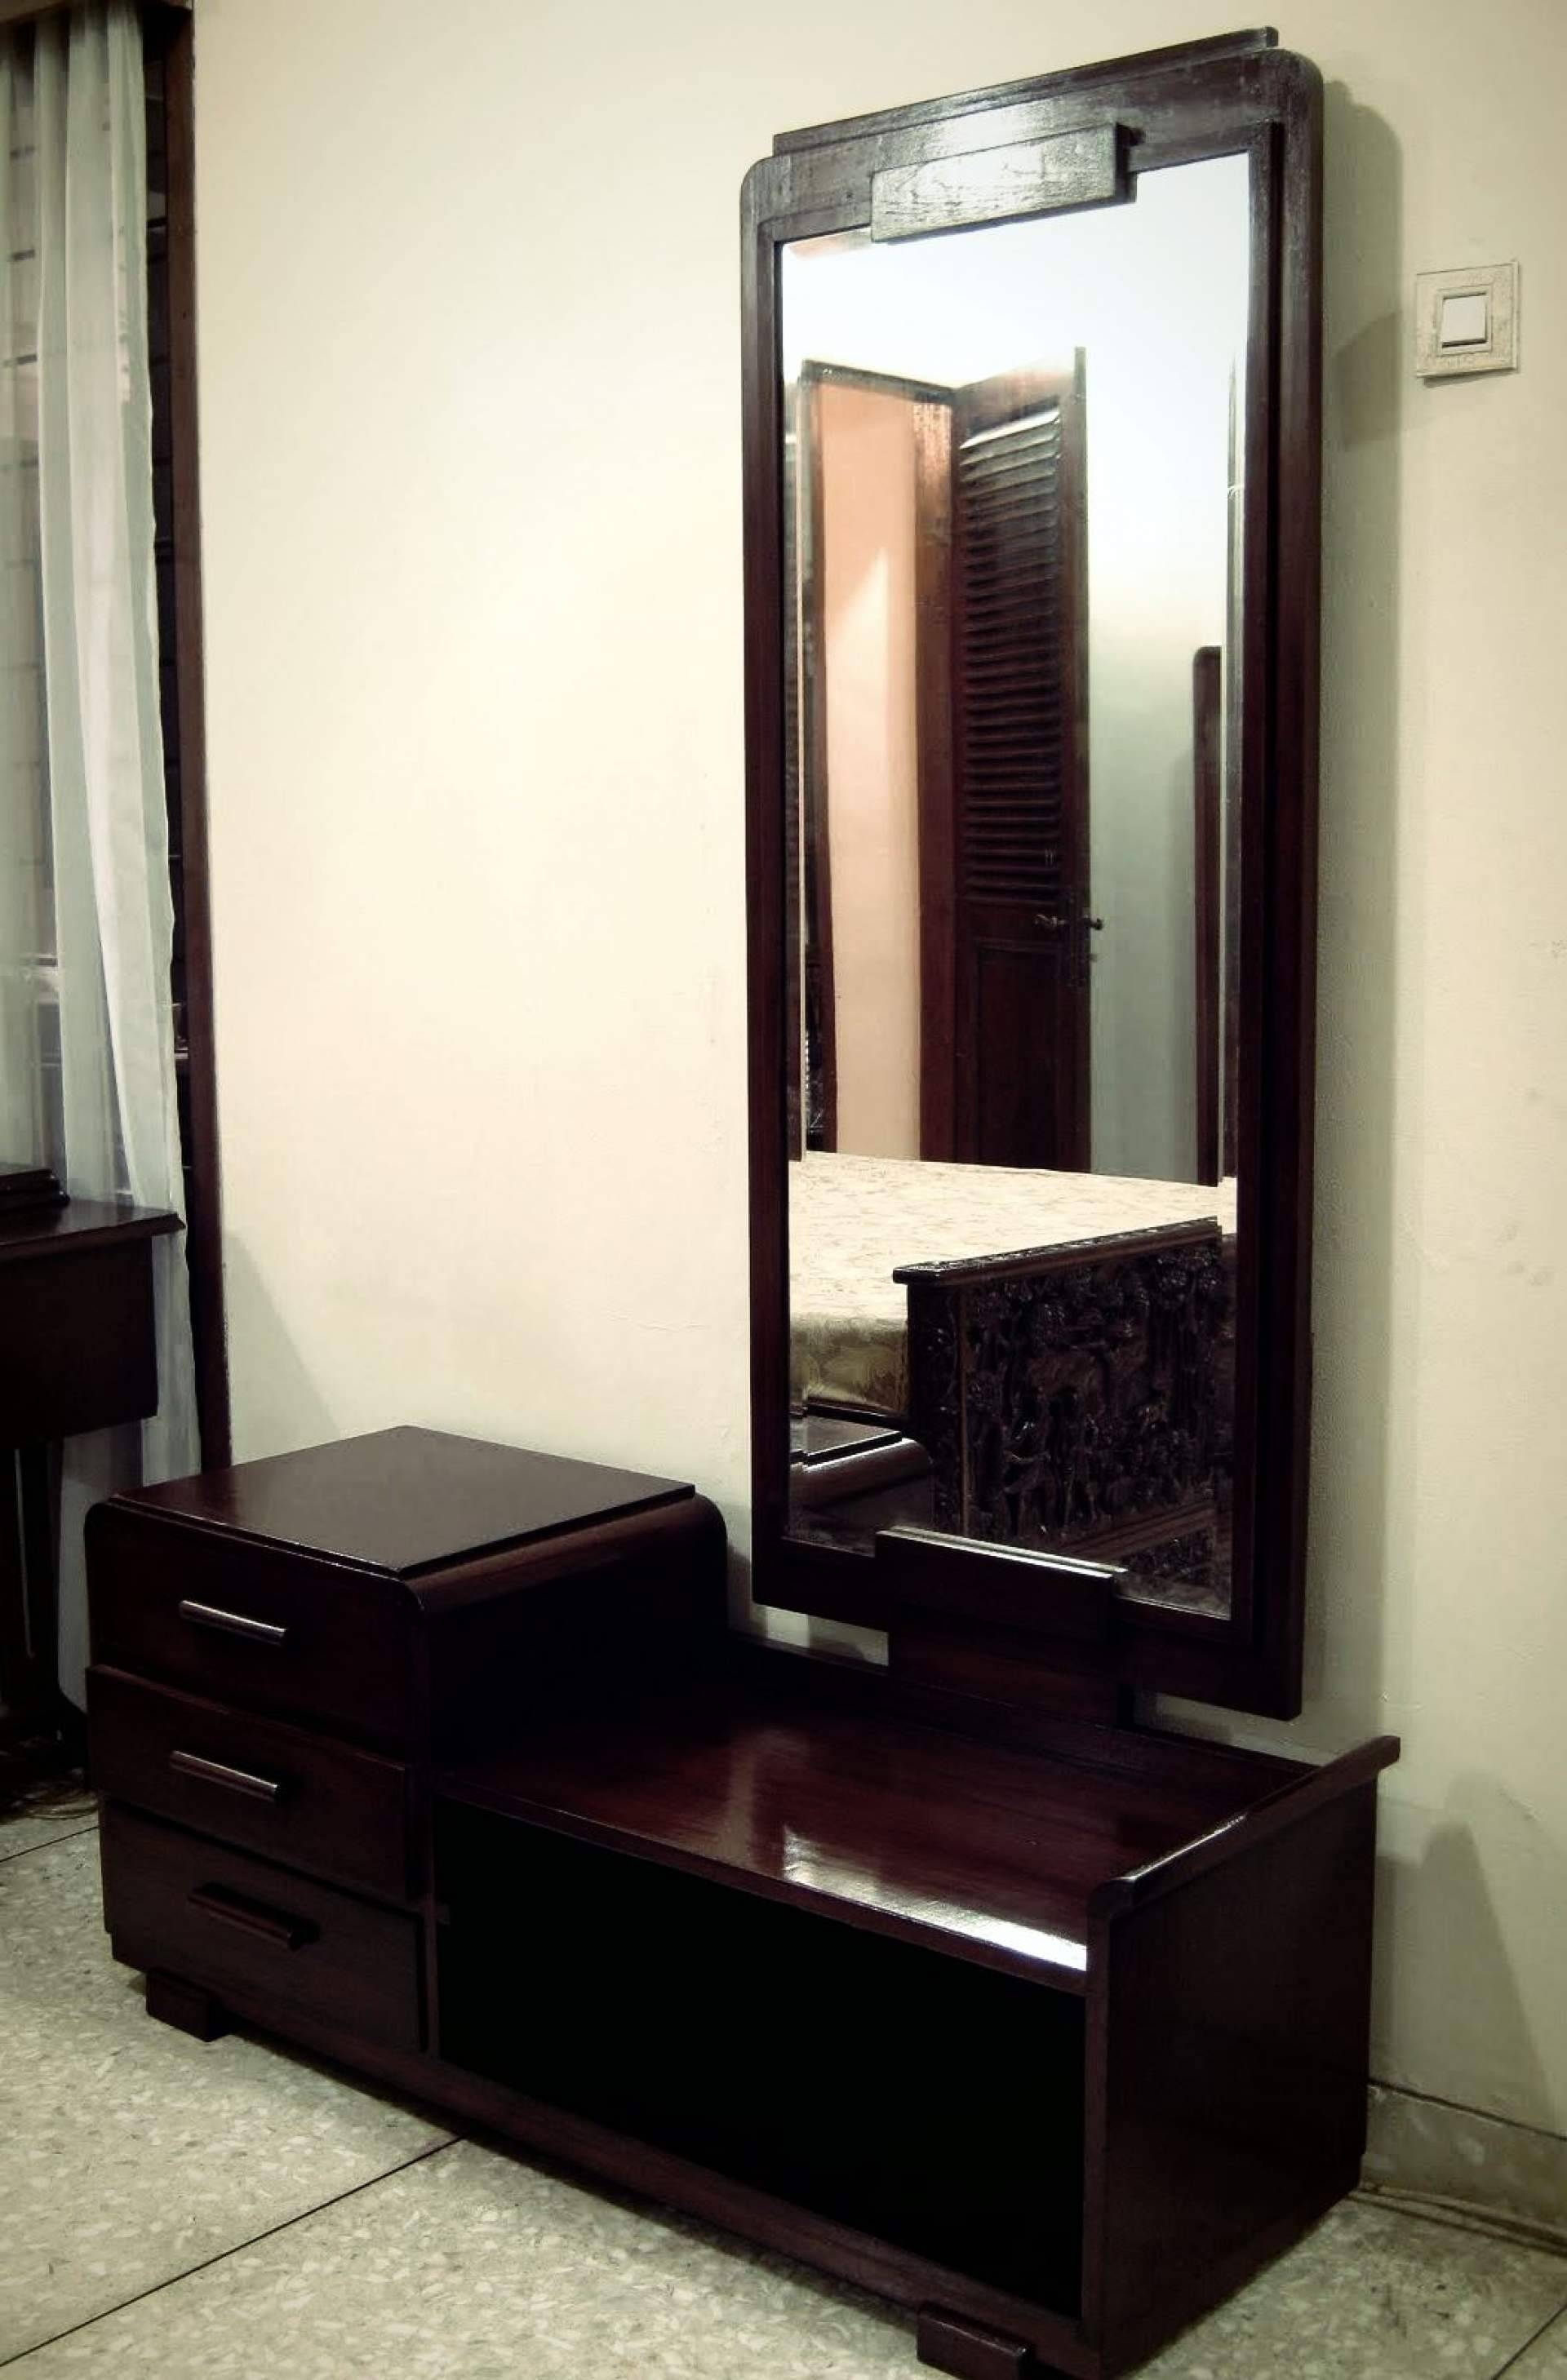 Bedroom : Cool Oversized Wall Mirrors Large Dining Room Mirror Regarding Floor Dressing Mirrors (View 1 of 15)